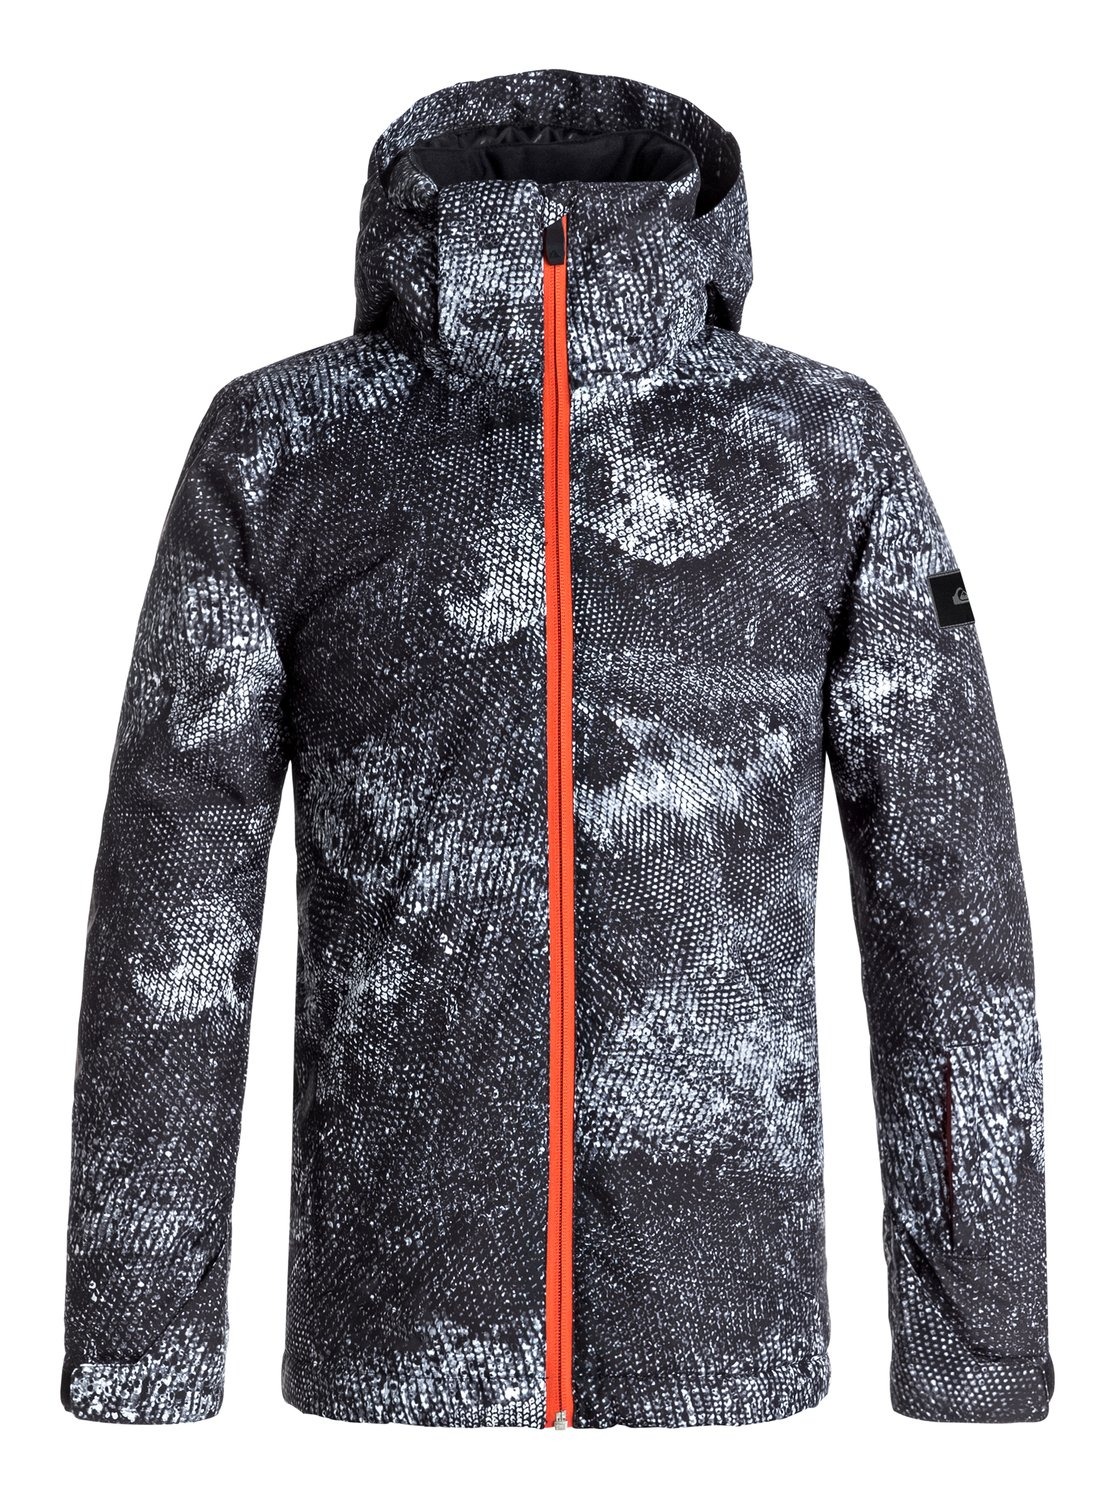 TR Mission - Snow Jacket<br>